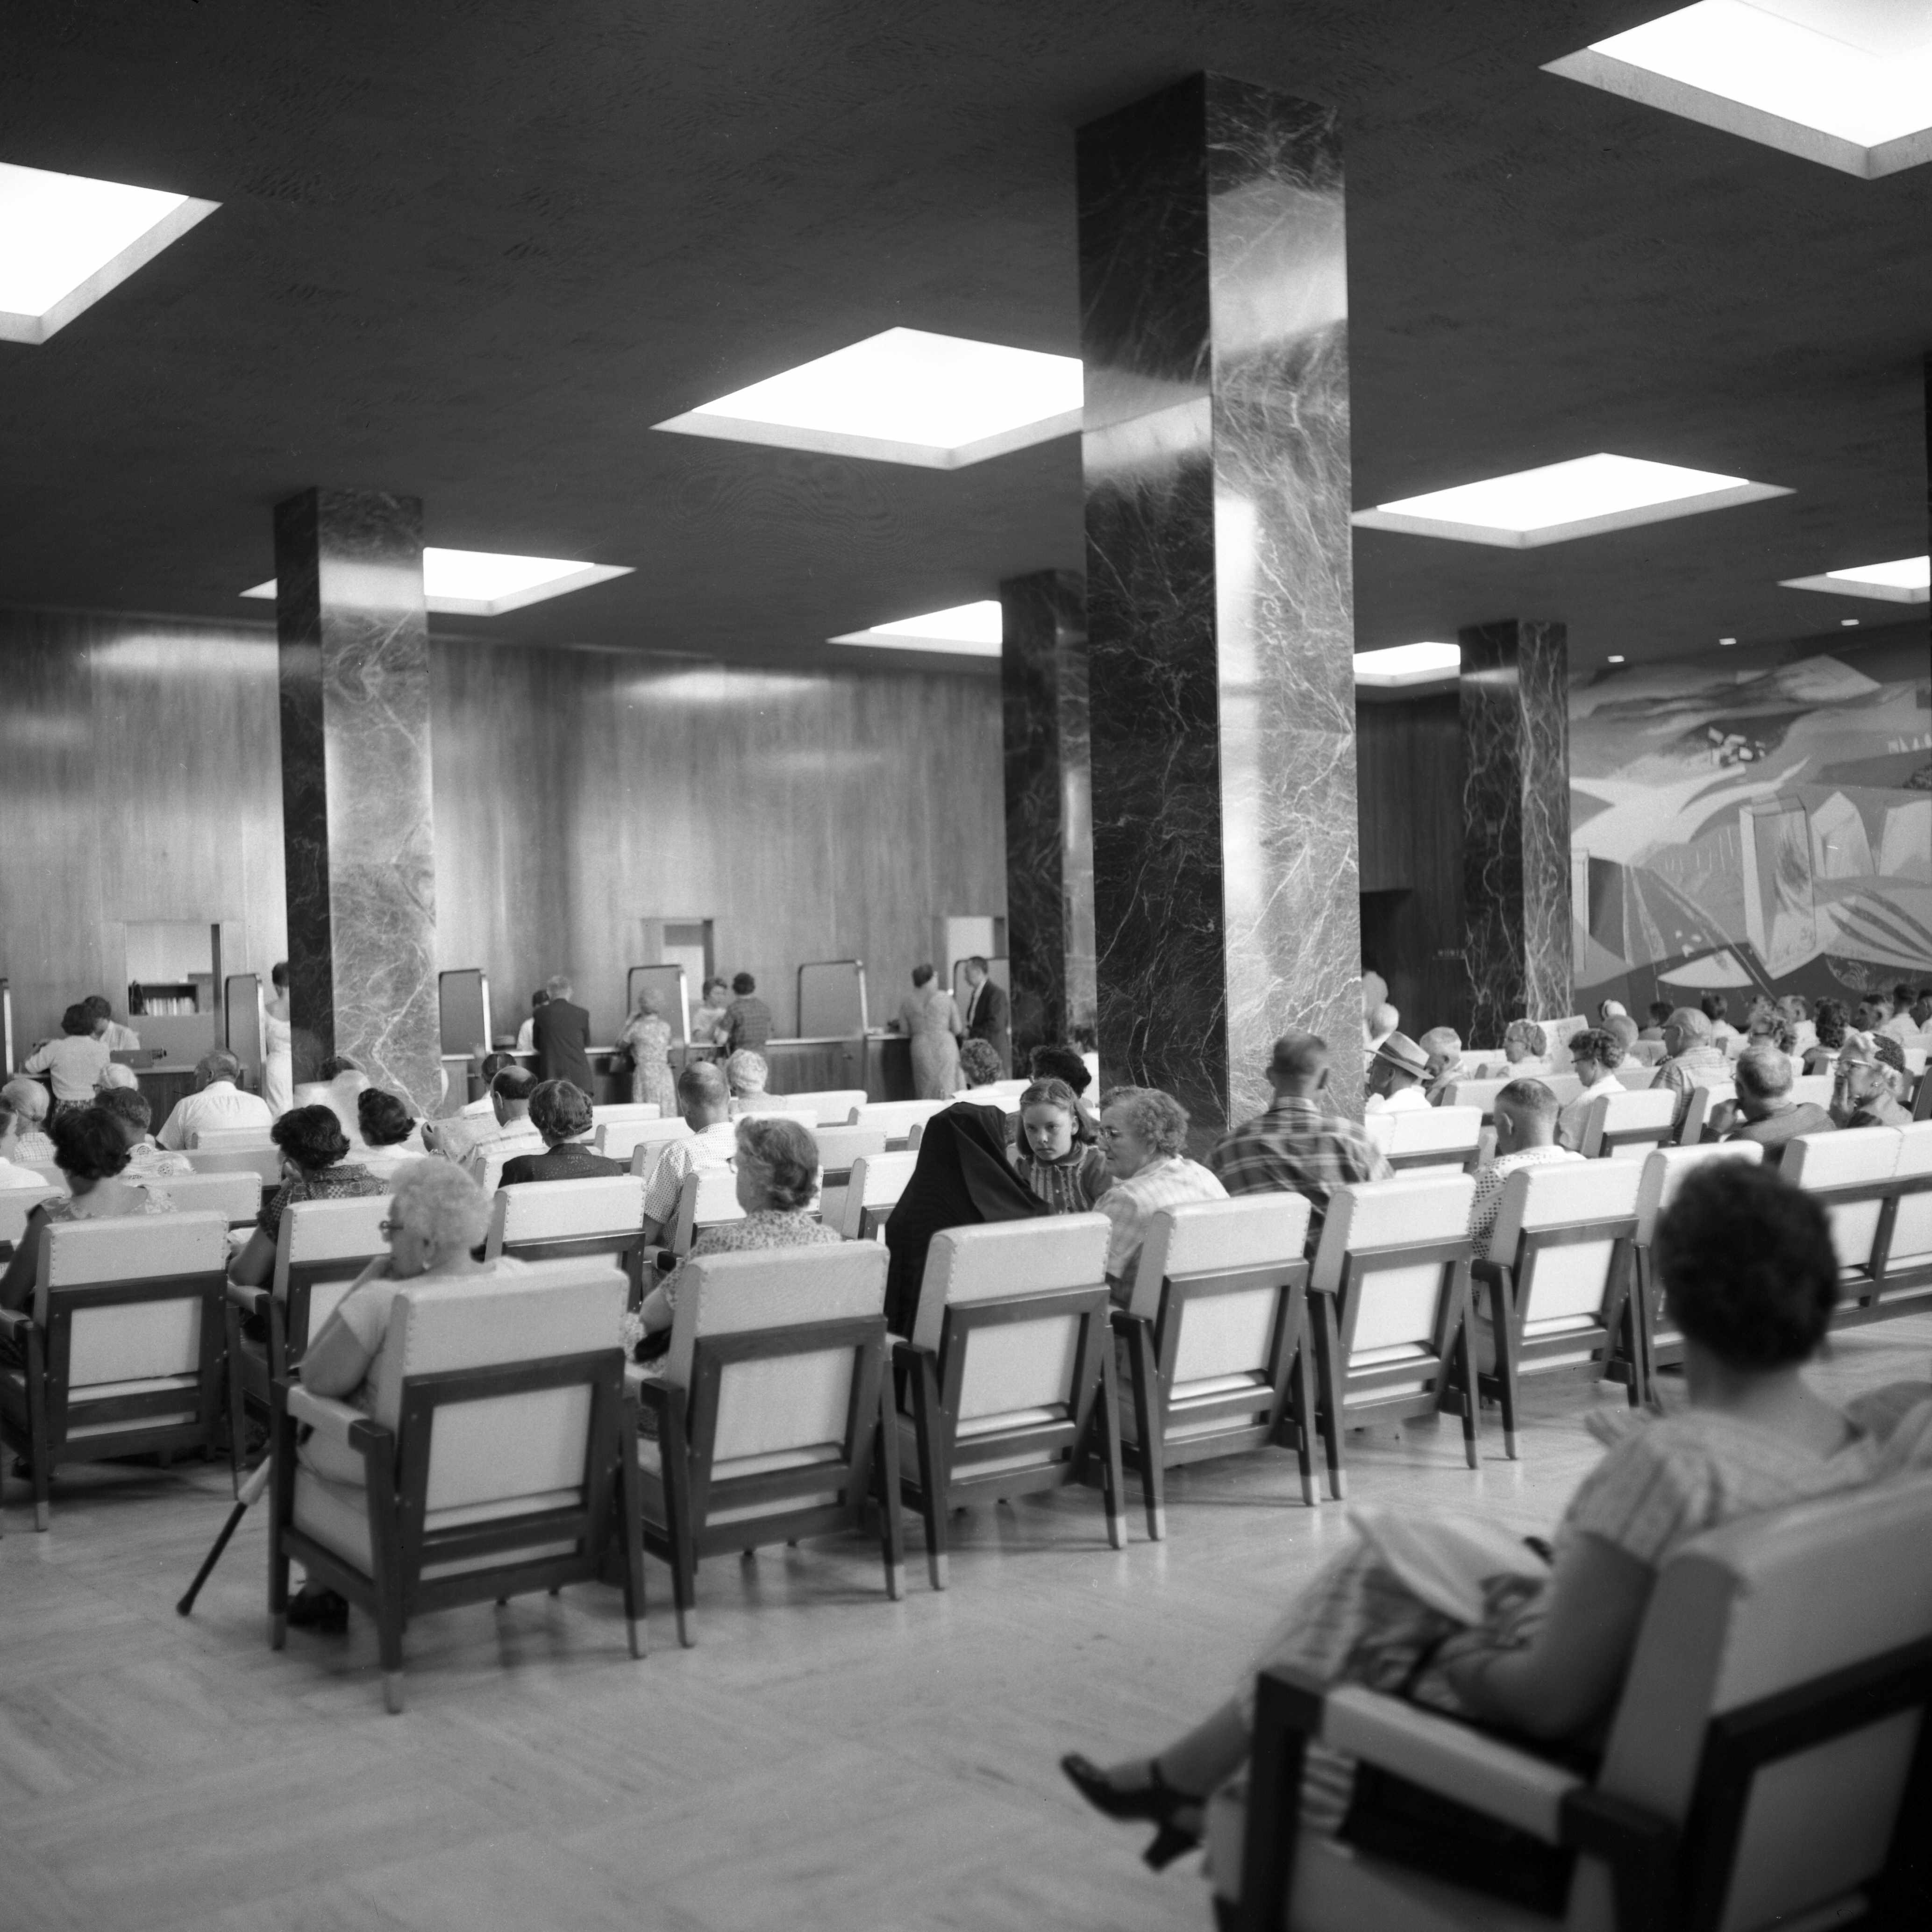 a 1959 Mayo Clinic waiting room full of patients